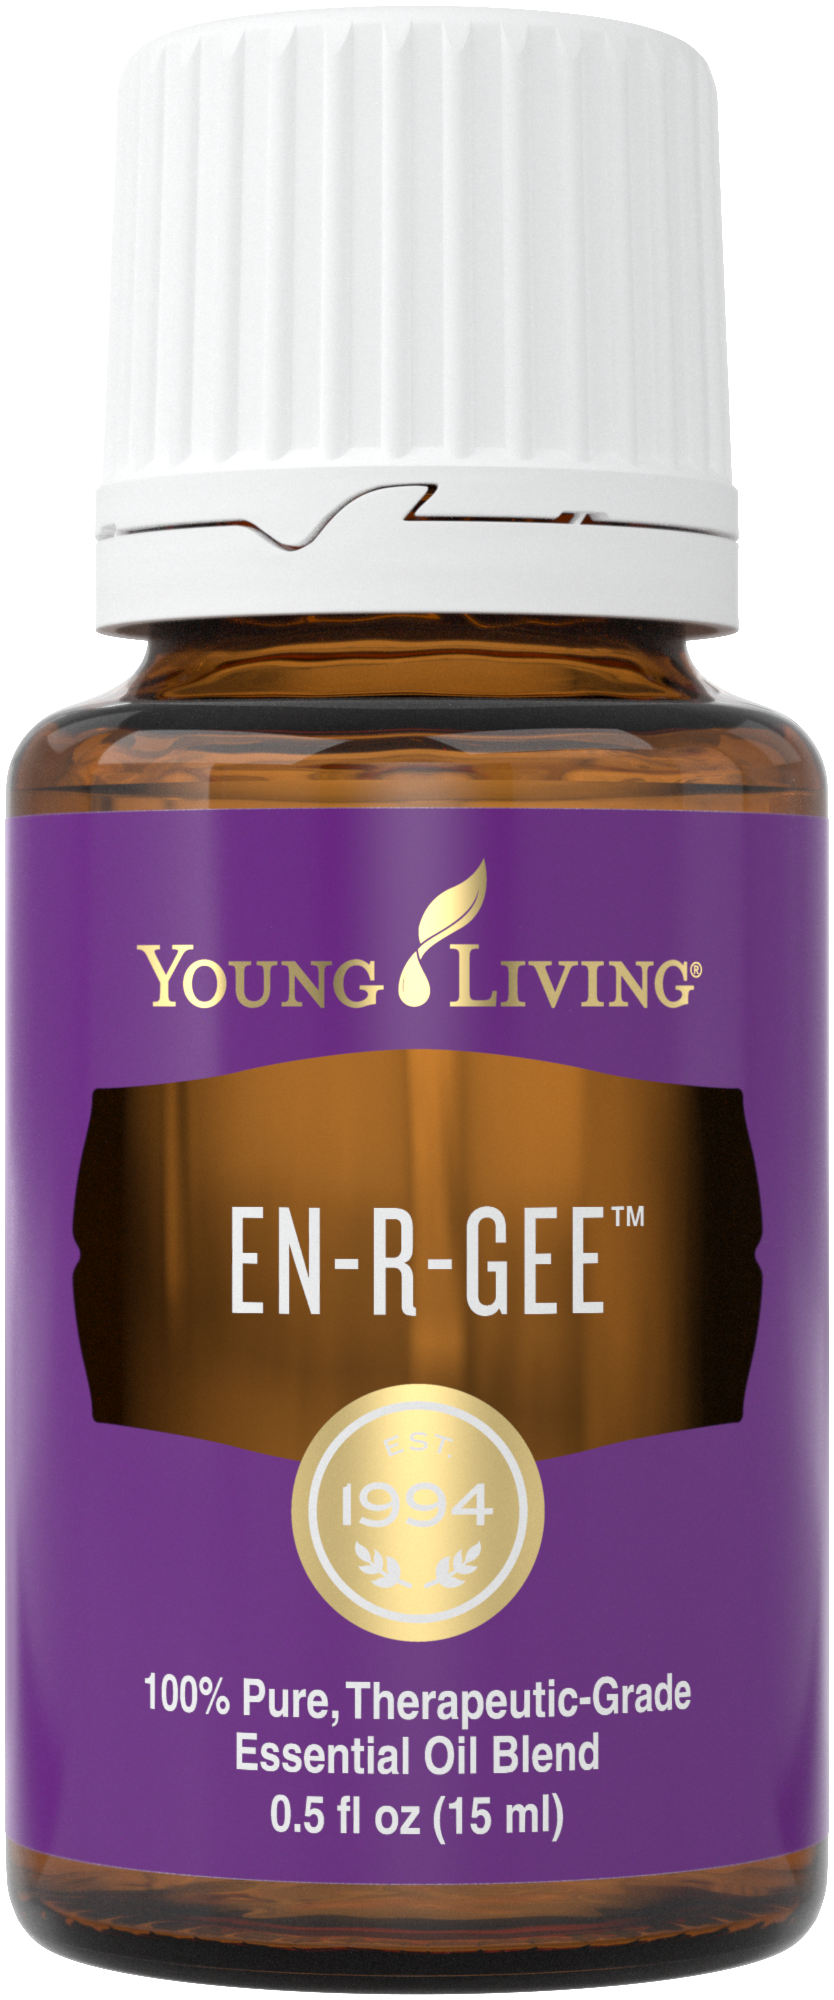 En-R-Gee Essential Oil by Young Living